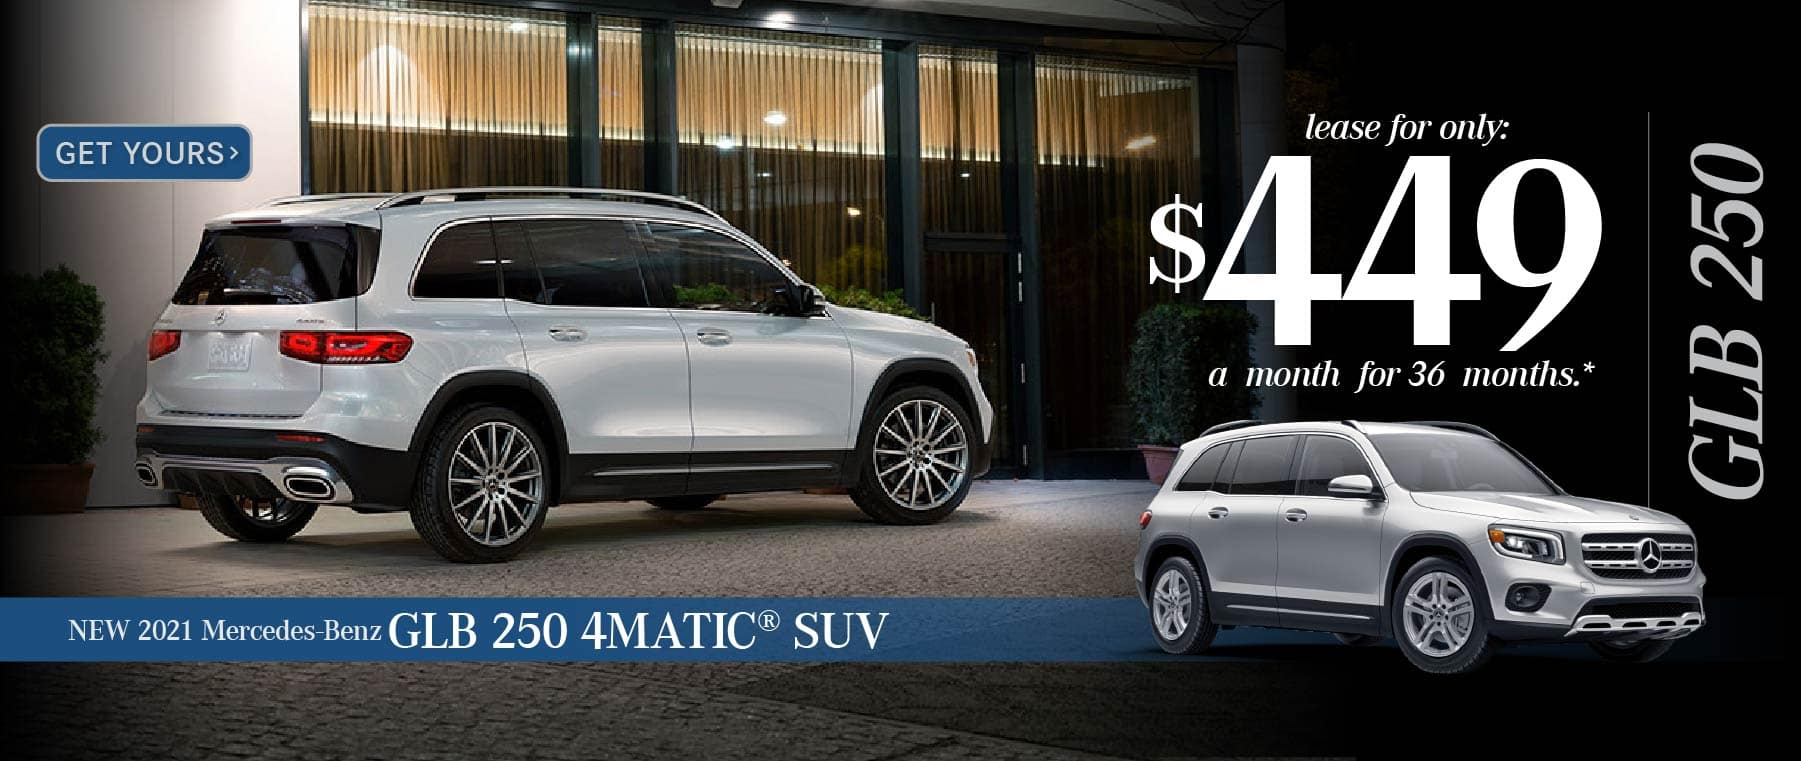 New 2021 Mercedes-Benz GLB 250 - Lease for only $449 a month for 36 months - Get Yours